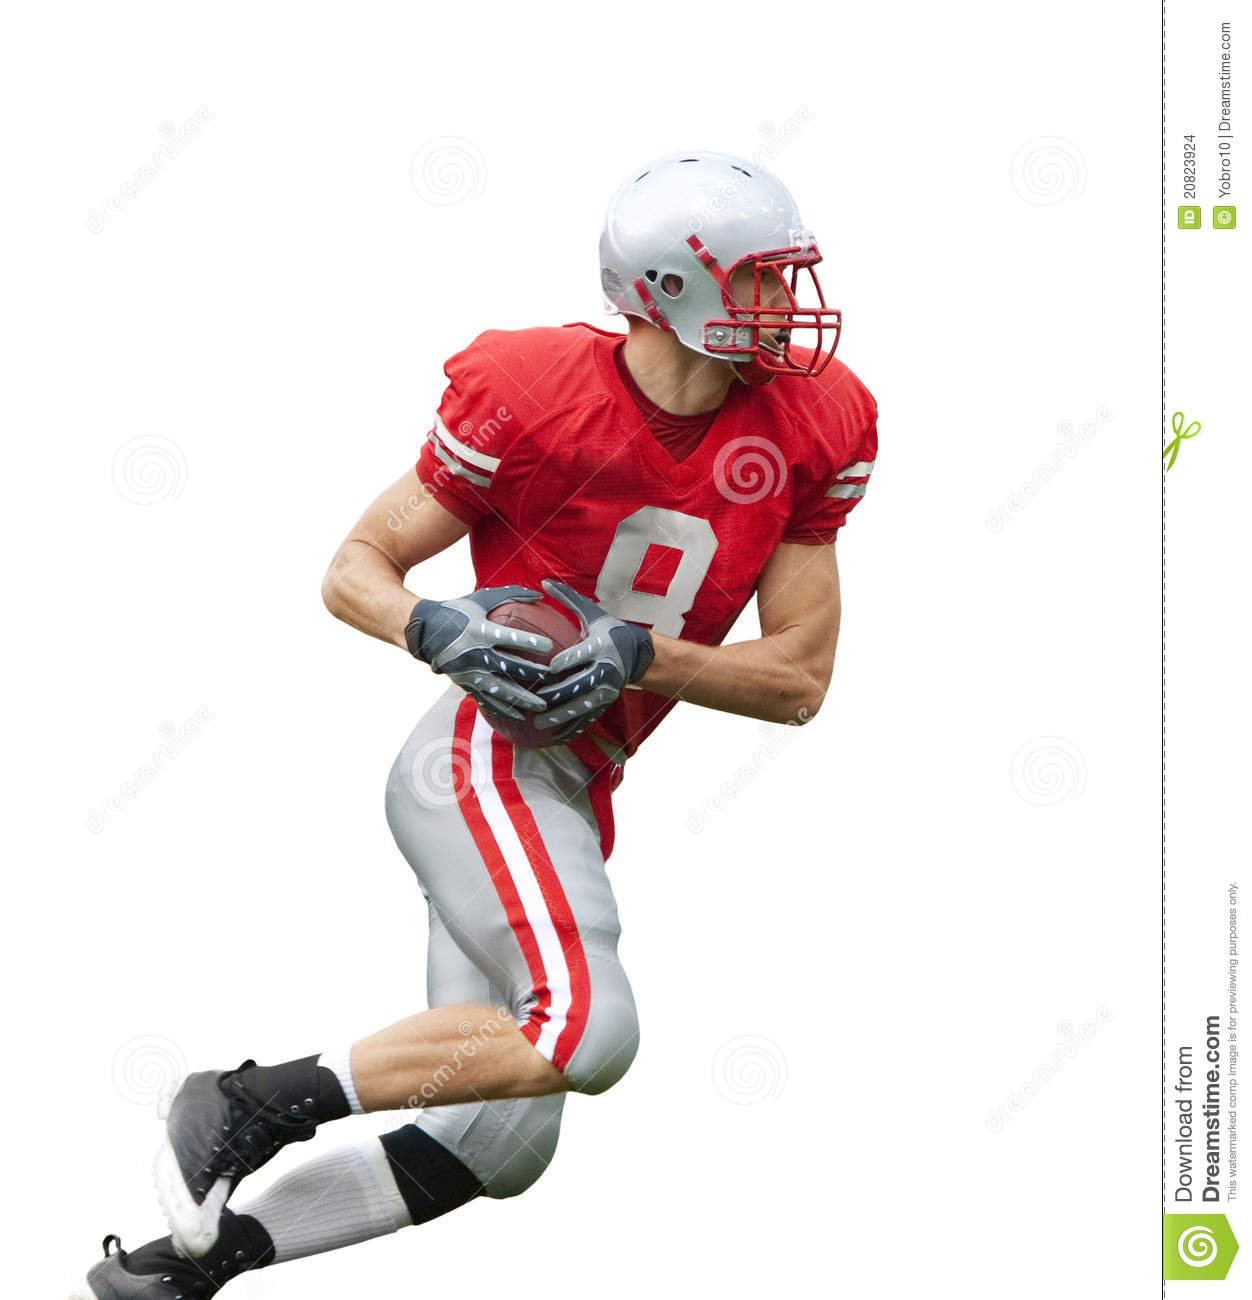 football Player running with the ball isolated on a white background ...